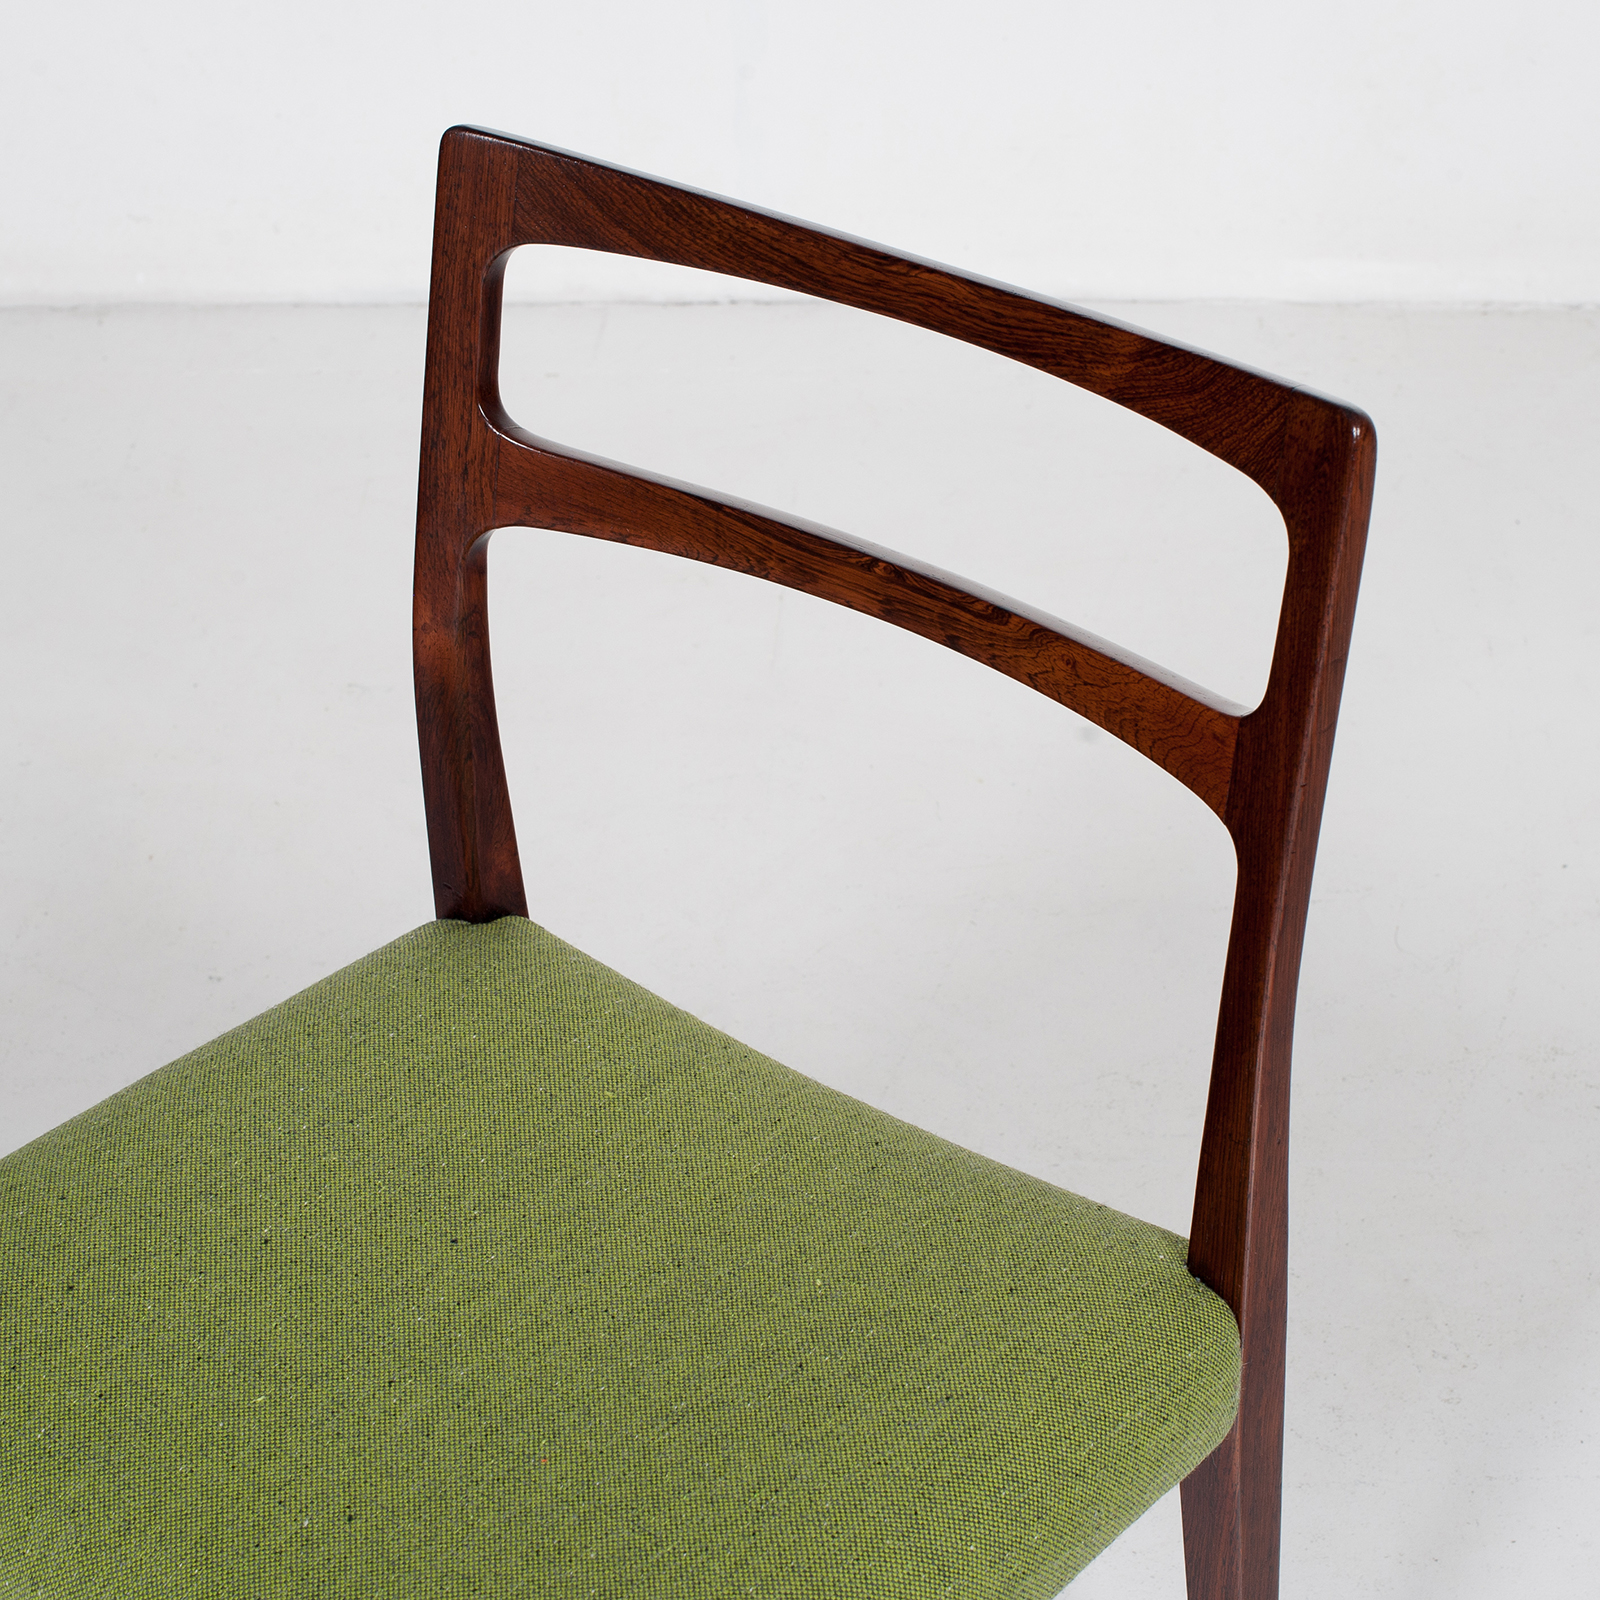 Set Of 4 Ladder Back Dining Chairs By Niels Moller In Rosewood, 1960s, Denmark31